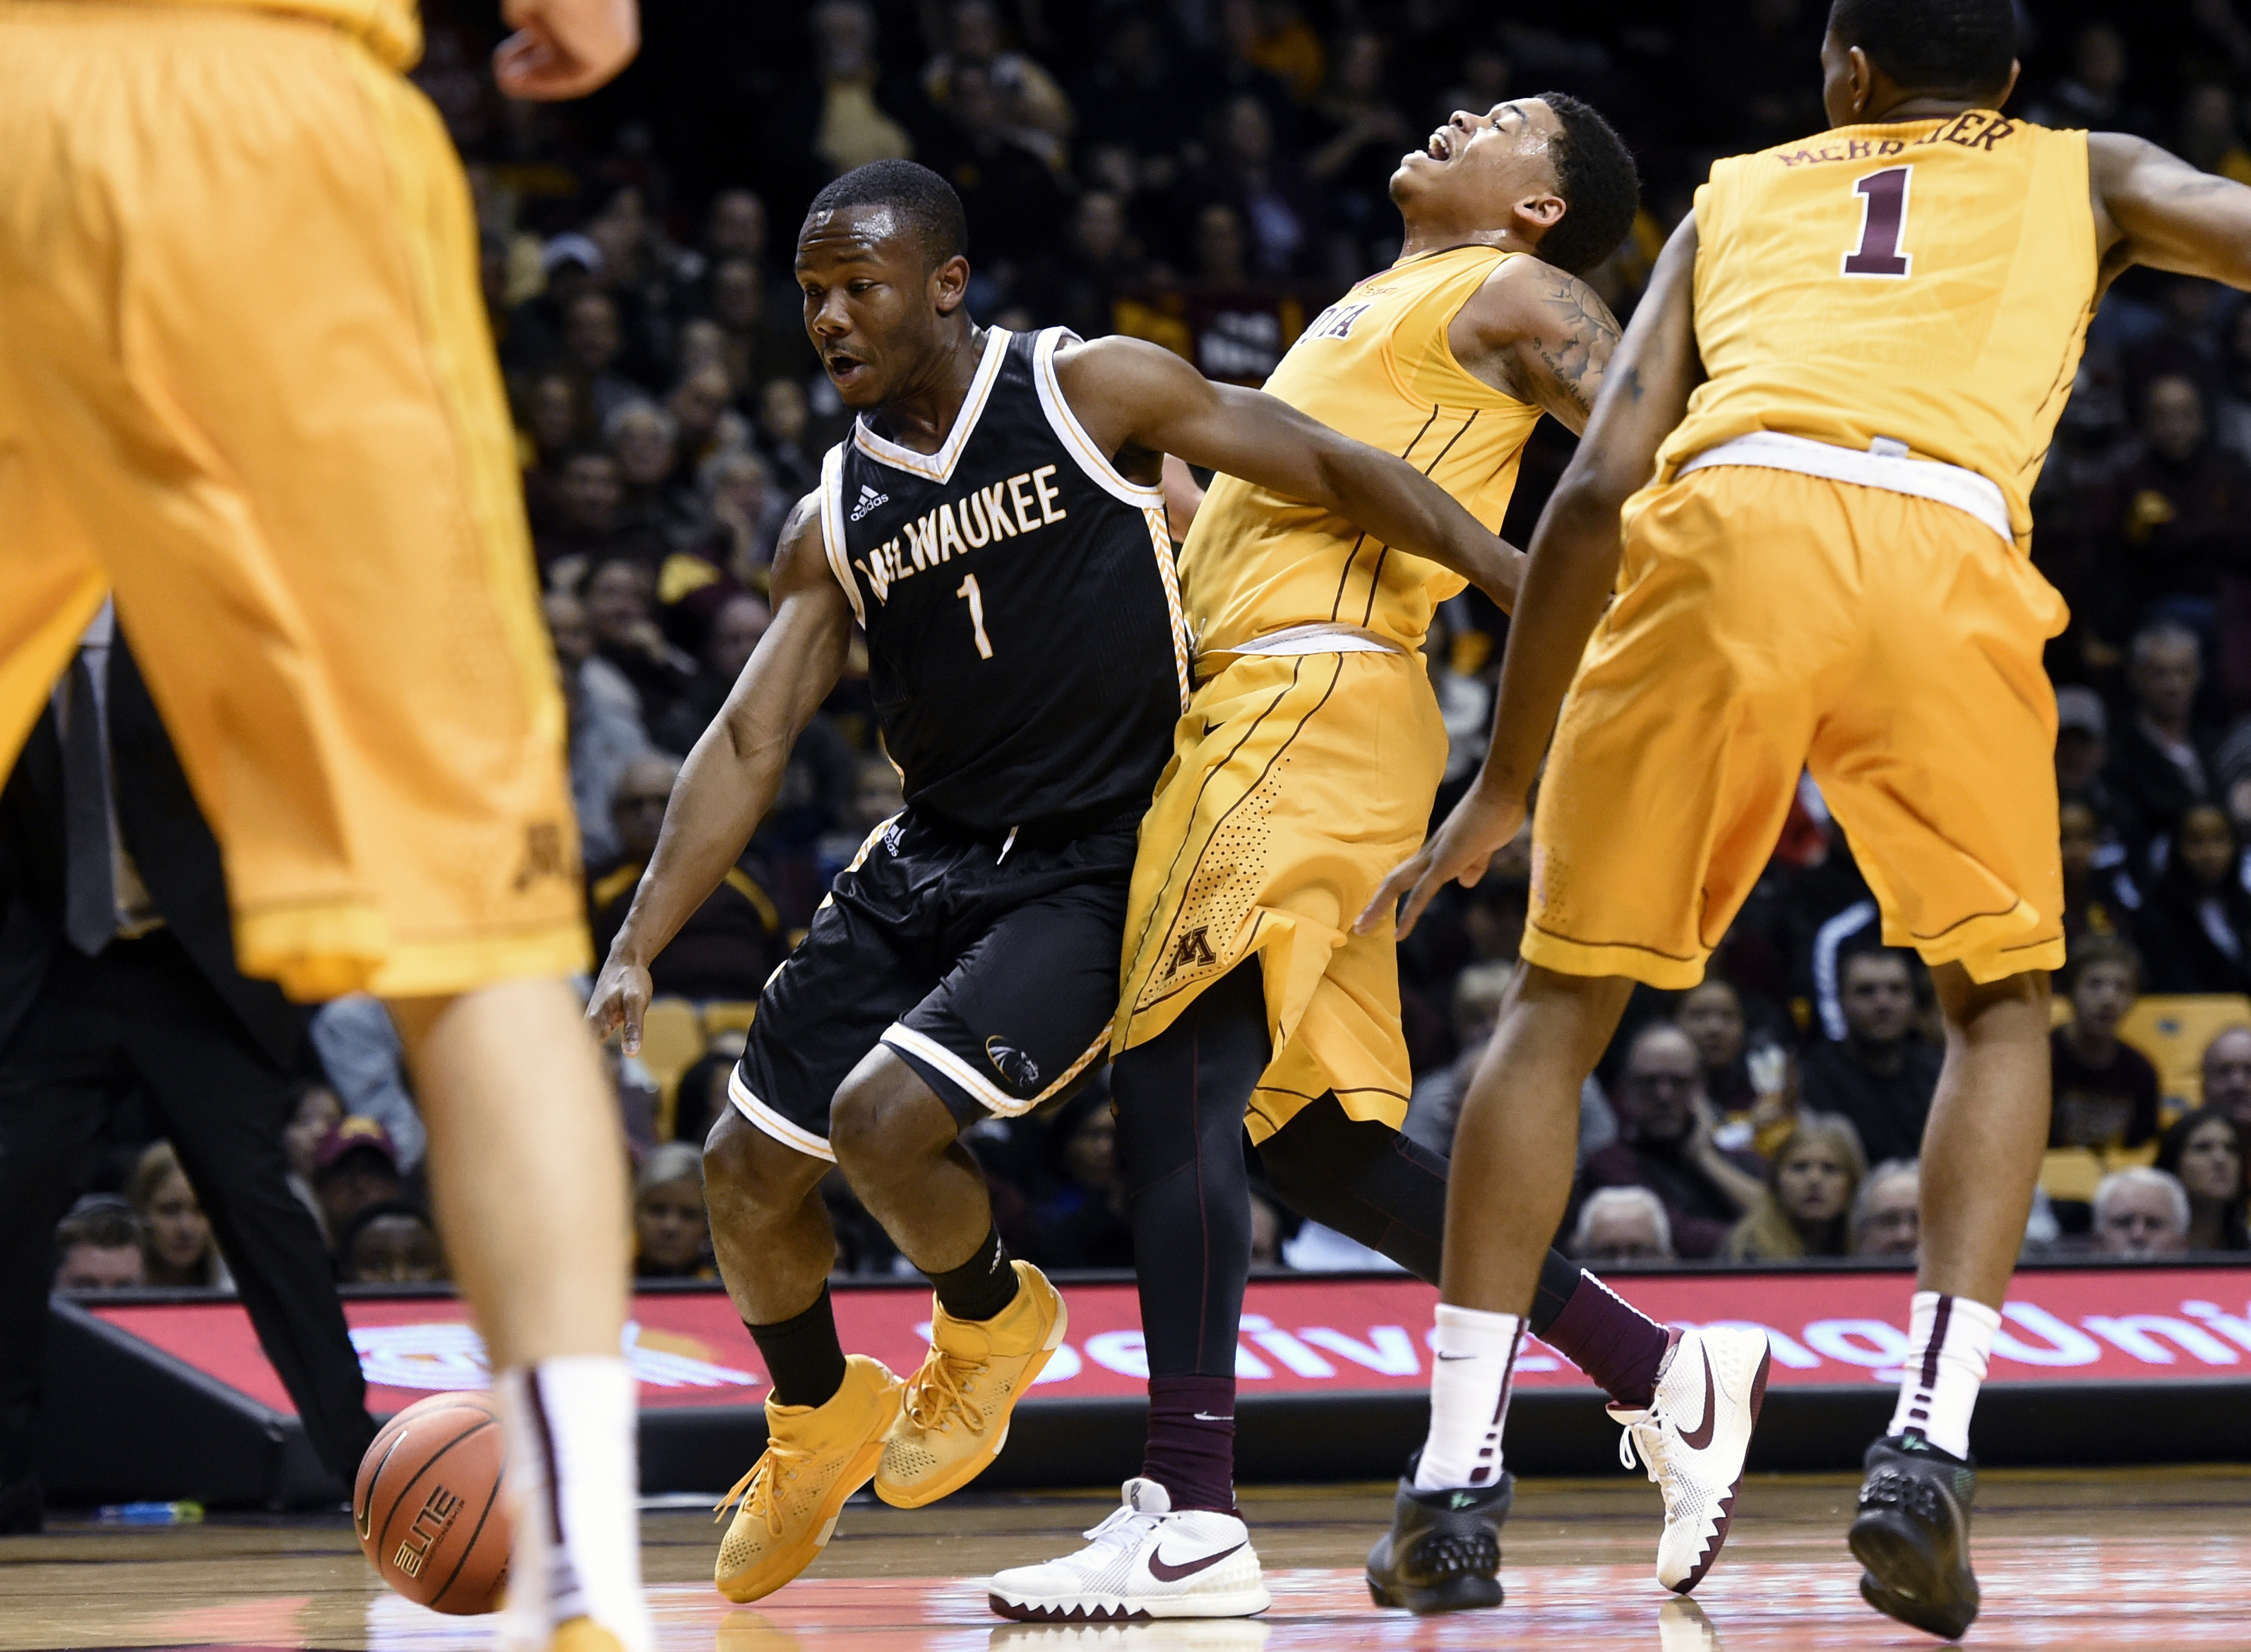 Milwaukee guard Jordan Johnson (1) is called for an offensive foul on Minnesota guard Nate Mason (2) as Minnesota guard Dupree McBrayer (1) watches during the first half of an NCAA college basketball game Wednesday, Dec. 23, 2015, in Minneapolis. (AP Phot